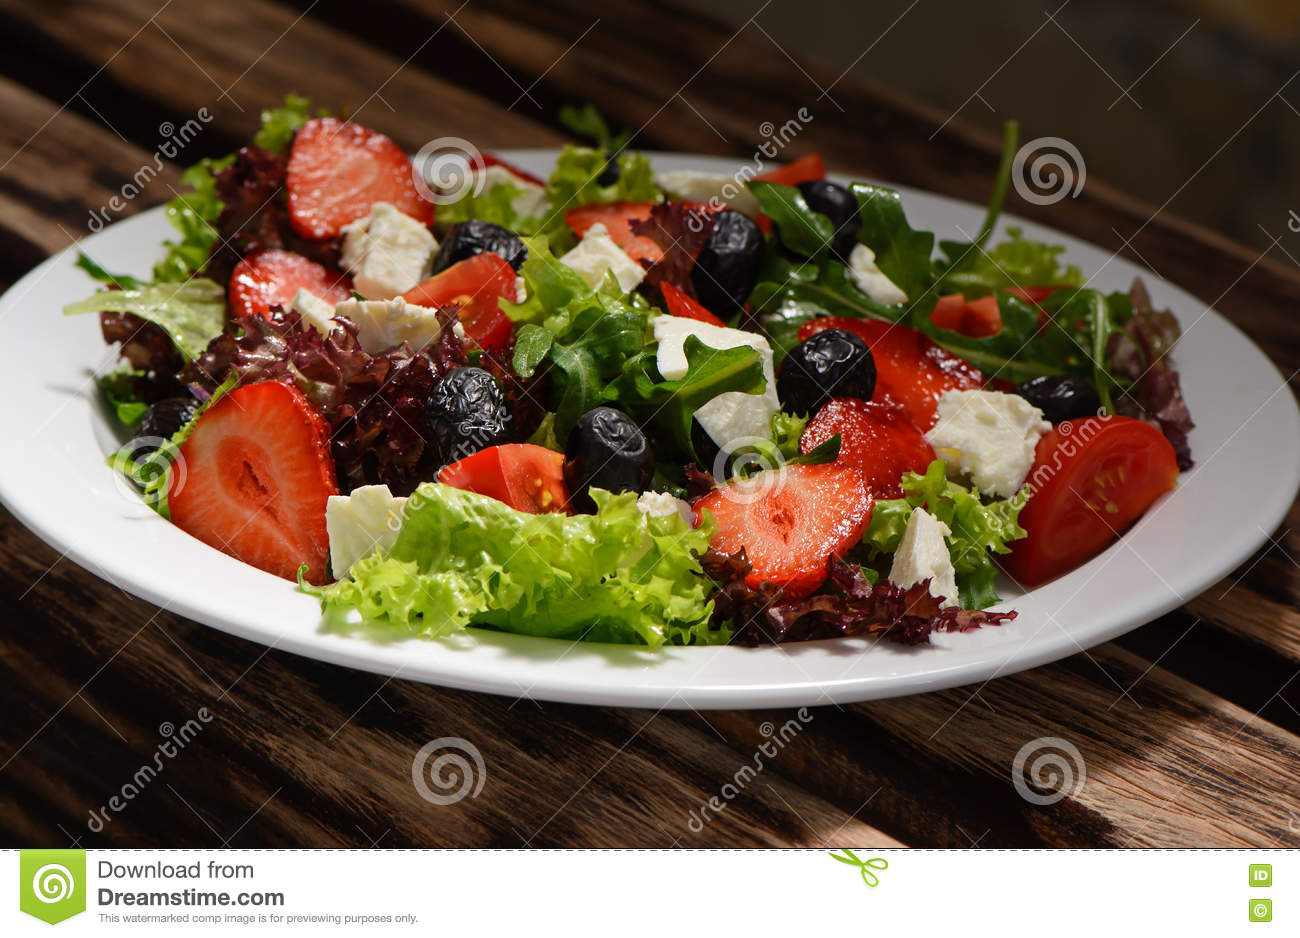 Salad, strawberries, cheese, tomatoes, olives